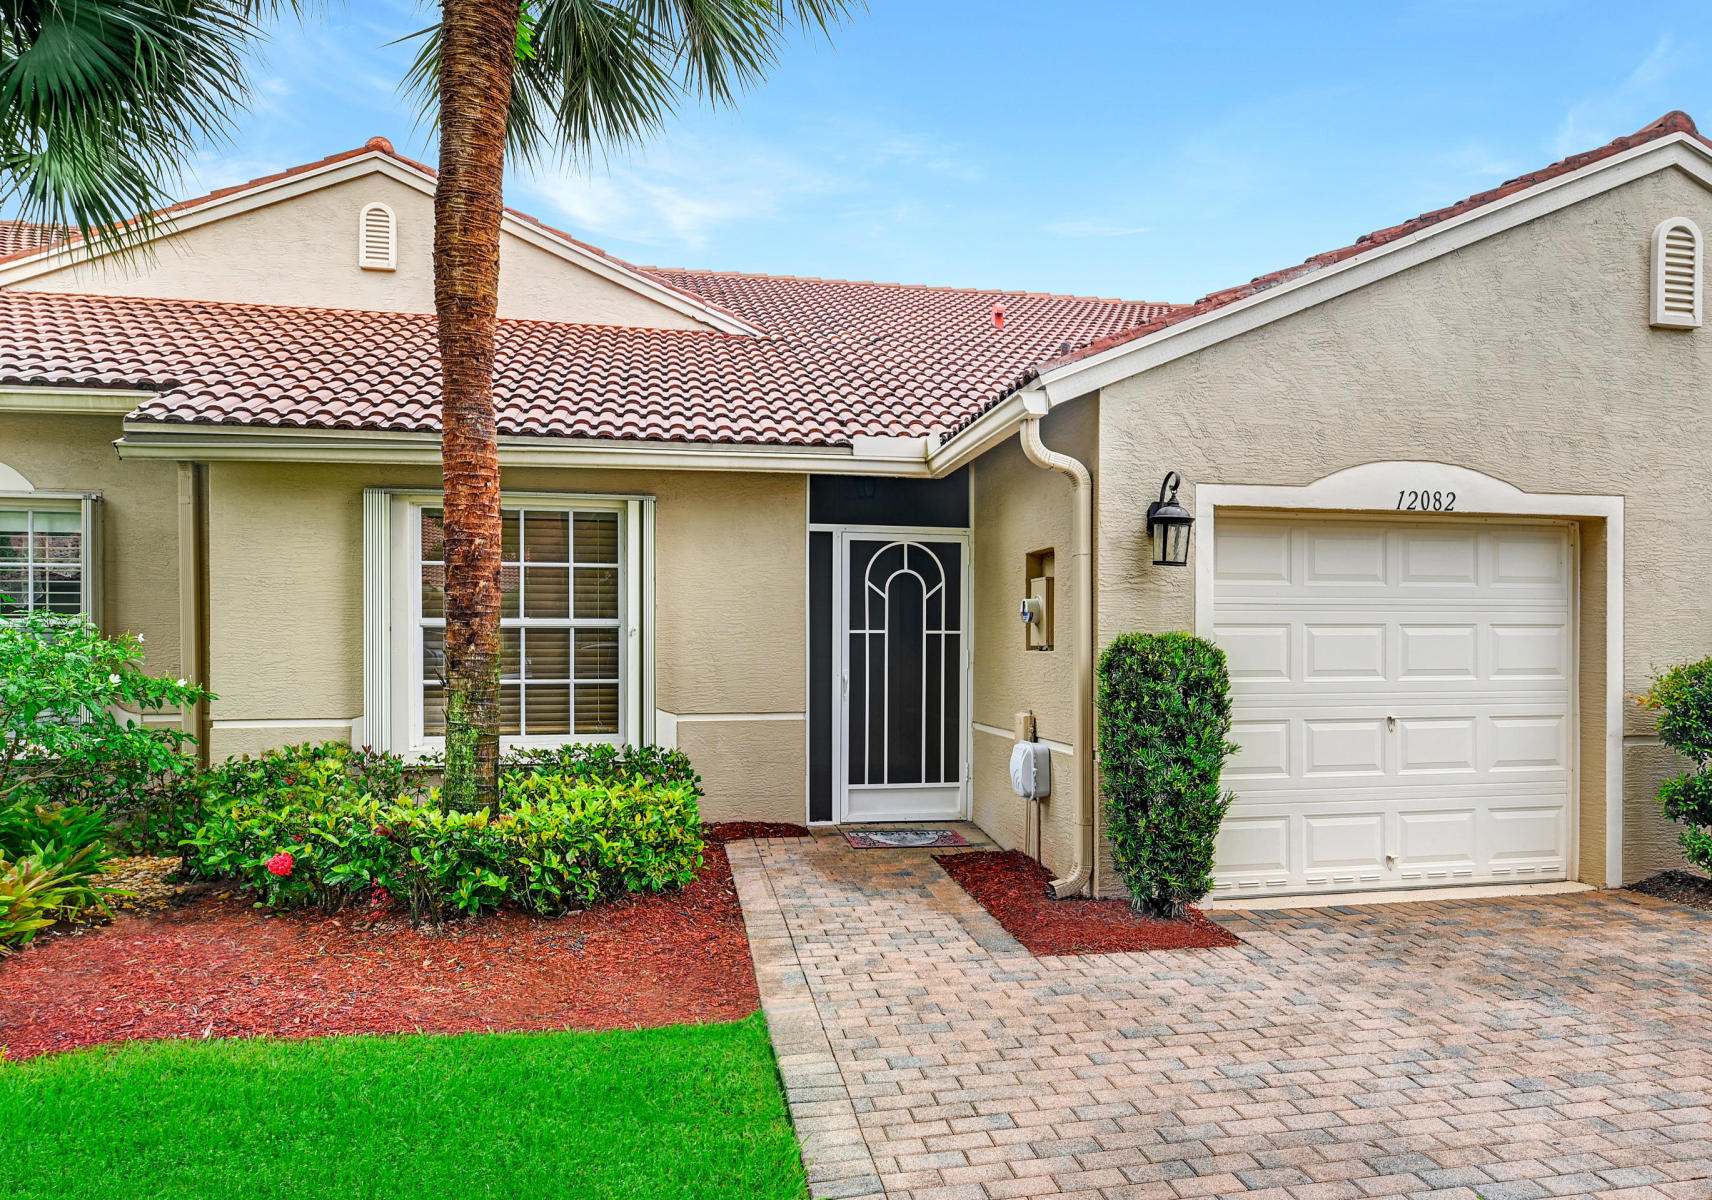 Photo of 12082 Napoli Lane, Boynton Beach, FL 33437